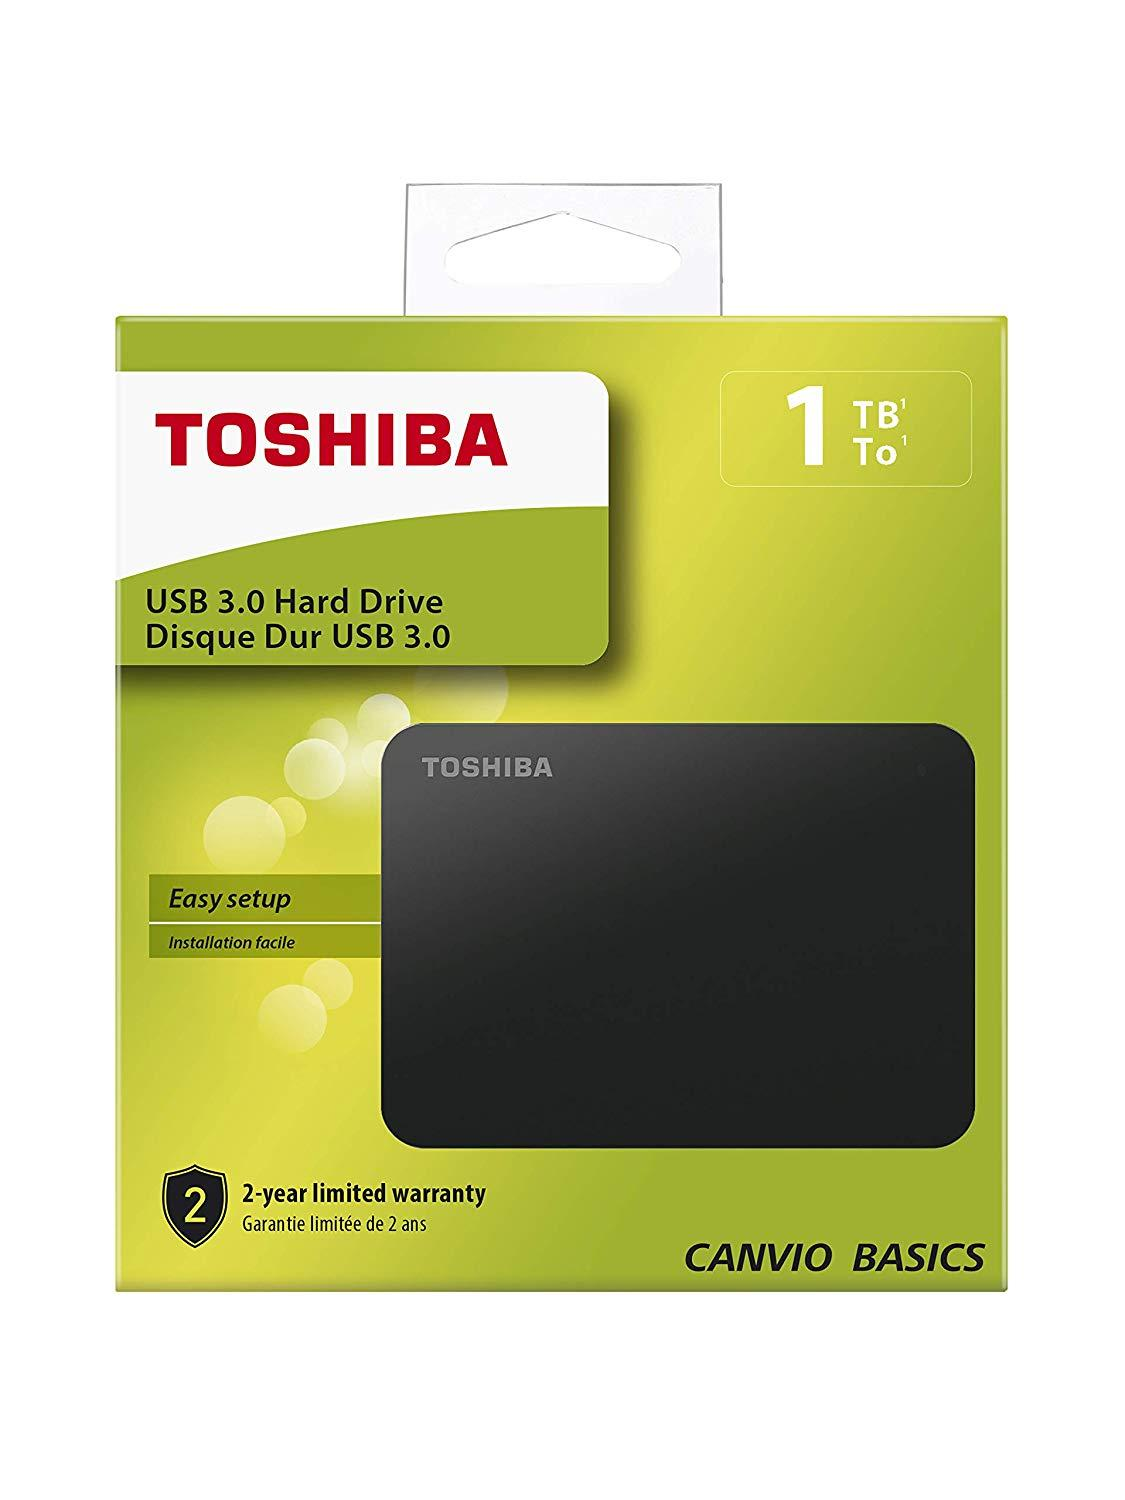 Външен хард диск Toshiba Canvio Basics, 1TB, 2.5 HDD, USB 3.0-1